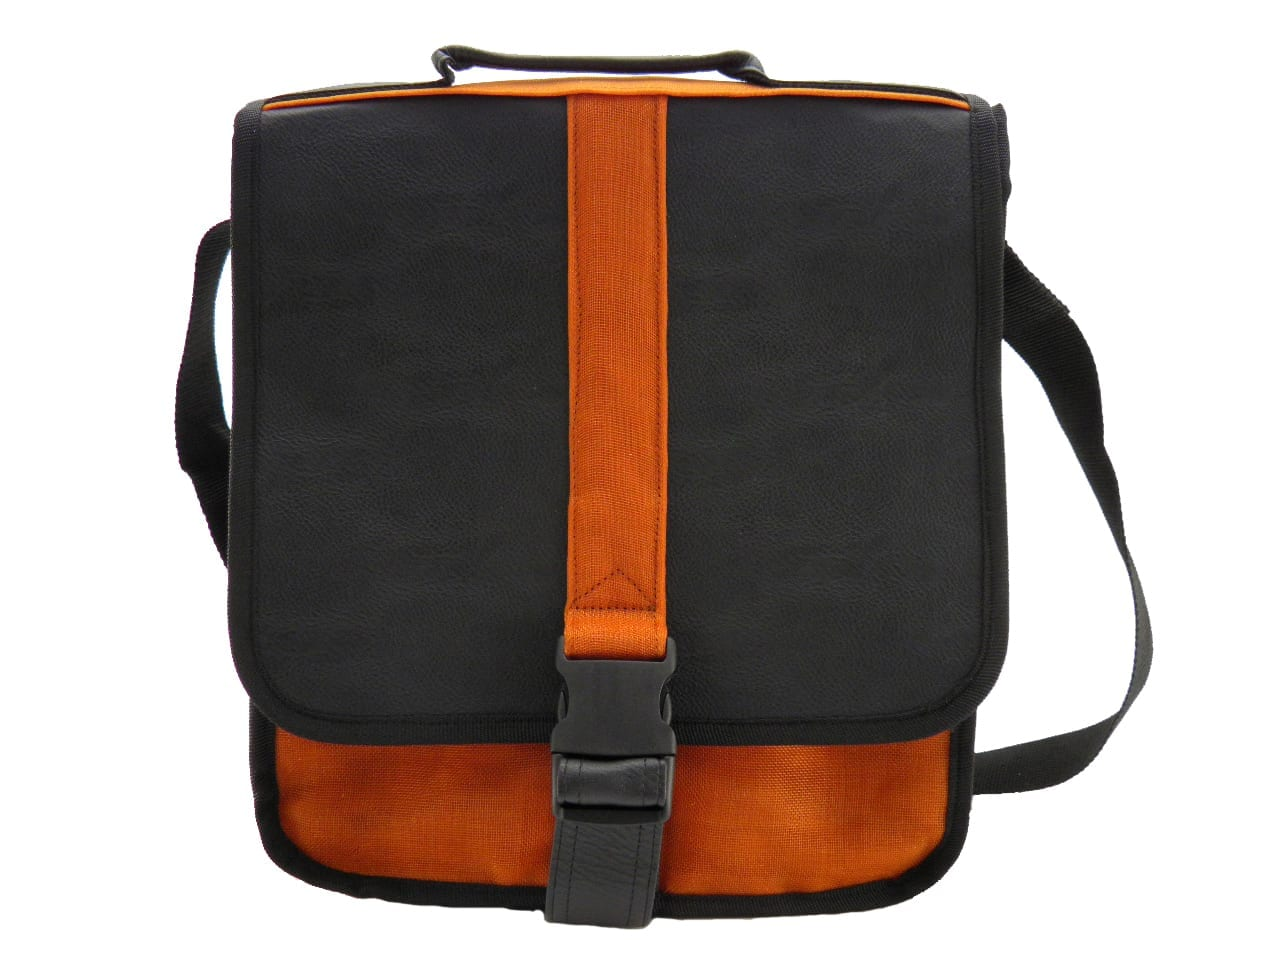 Le Globe-Trotter - Sacoche Tablette - Orange